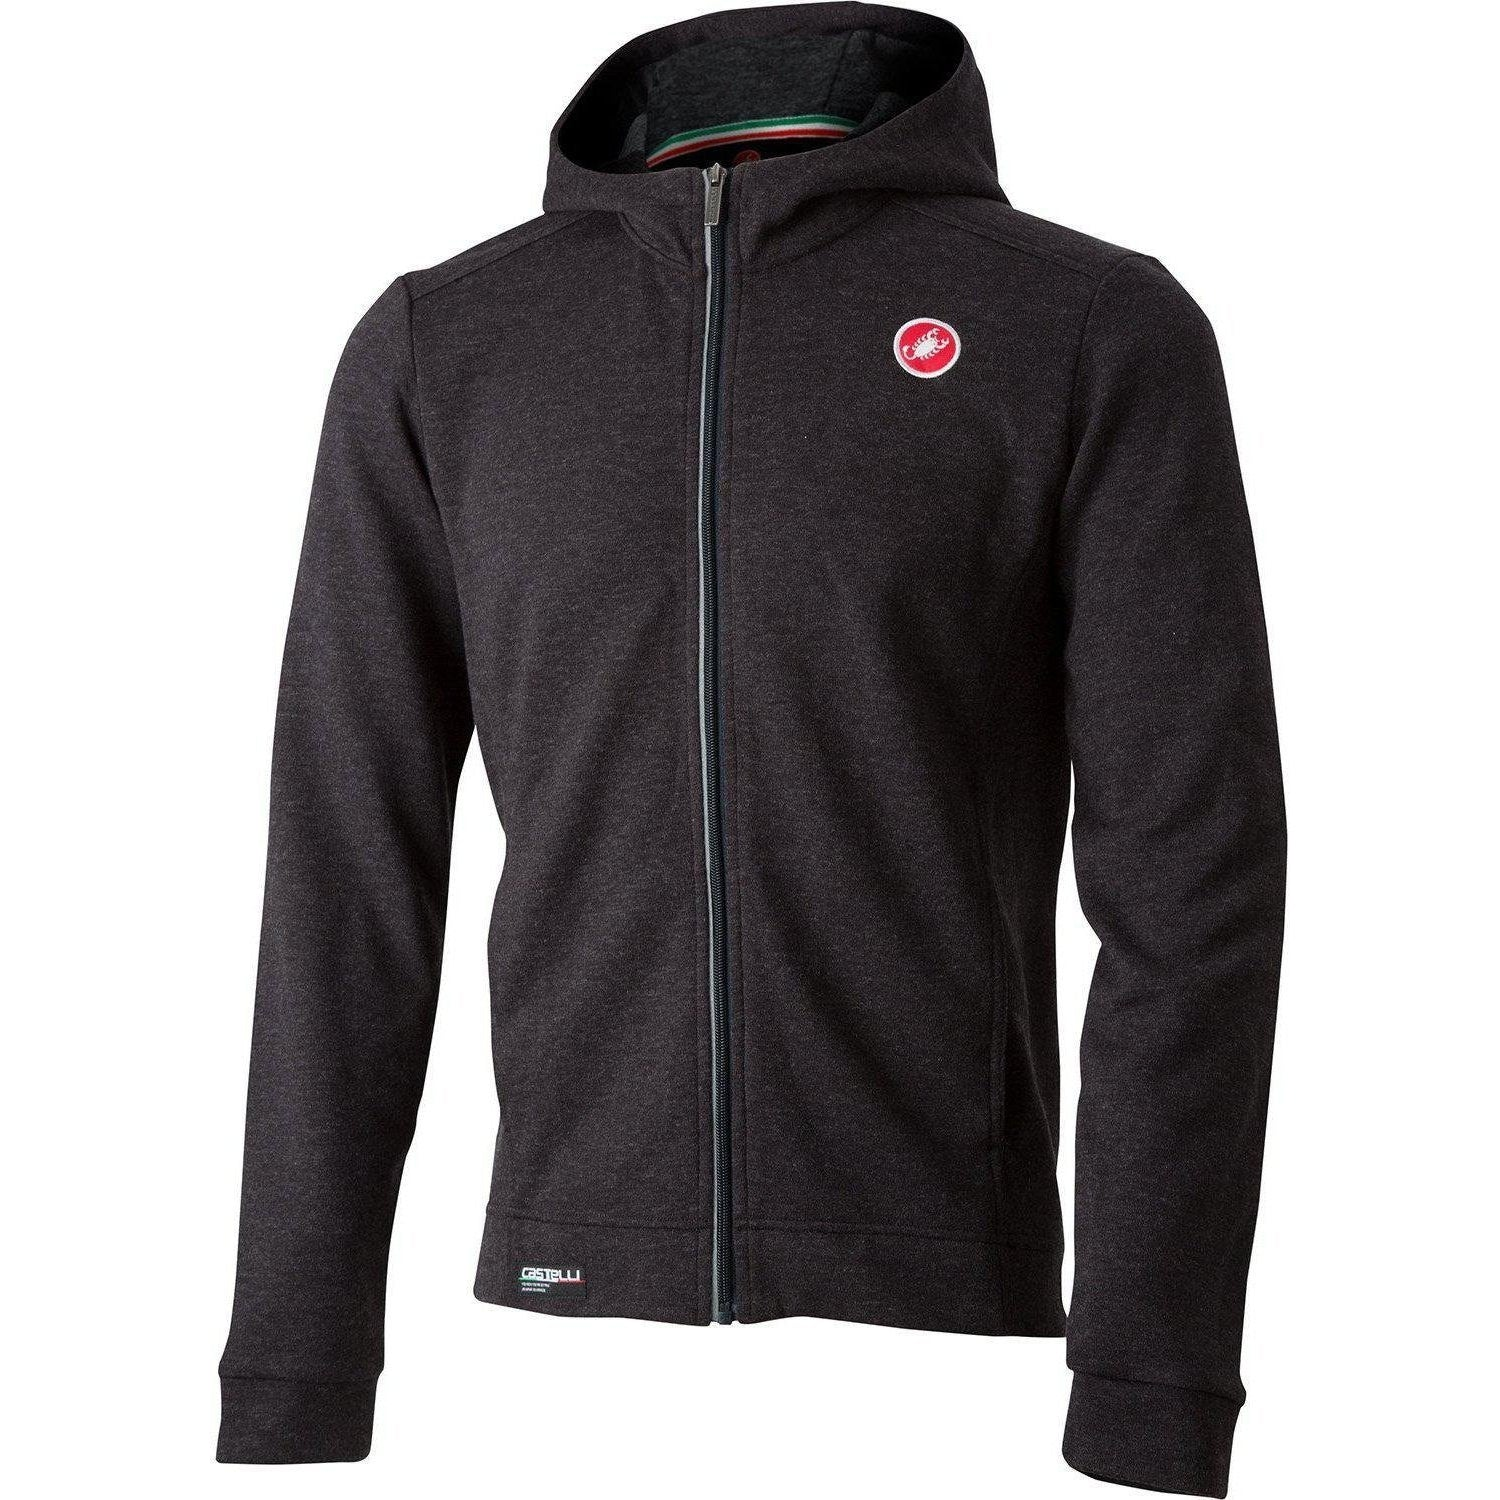 Castelli-Castelli Milano Full Zip Fleece Hoodie-Melange Light Black-XS-CS185590851-saddleback-elite-performance-cycling